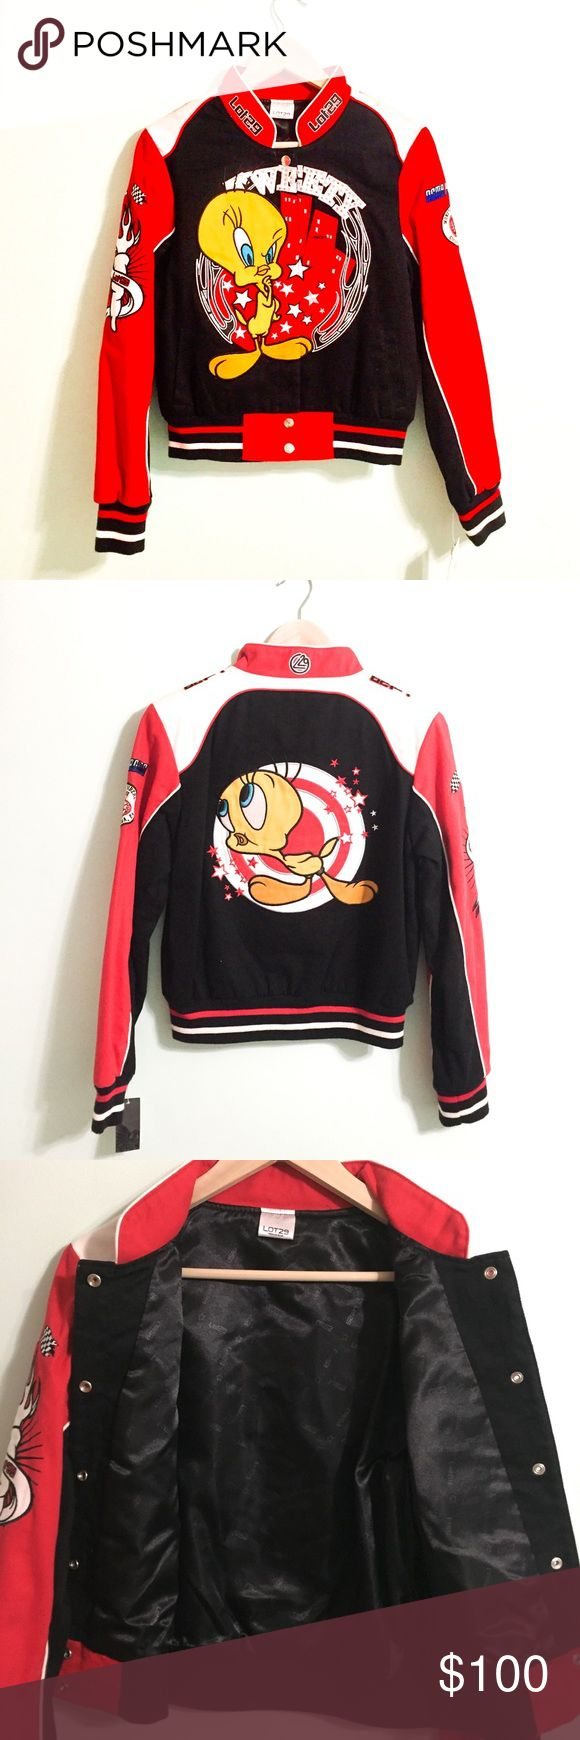 NWT Vintage 90s Tweety Bird Bomber Jacket Vintage 90s Tweety Bird Bomber Jacket. Trademark Looney Toons! Brand is LOT 29! Red, black, white and yellow. Amazing colors and excellent condition. NWT! Shell: 100% cotton. Lining: 100% polyester. Size L in vintage sizing. Would fit a medium as well! Bust: 20in Length: 22in Arm: 24in. Offers welcome! Vintage Jackets & Coats